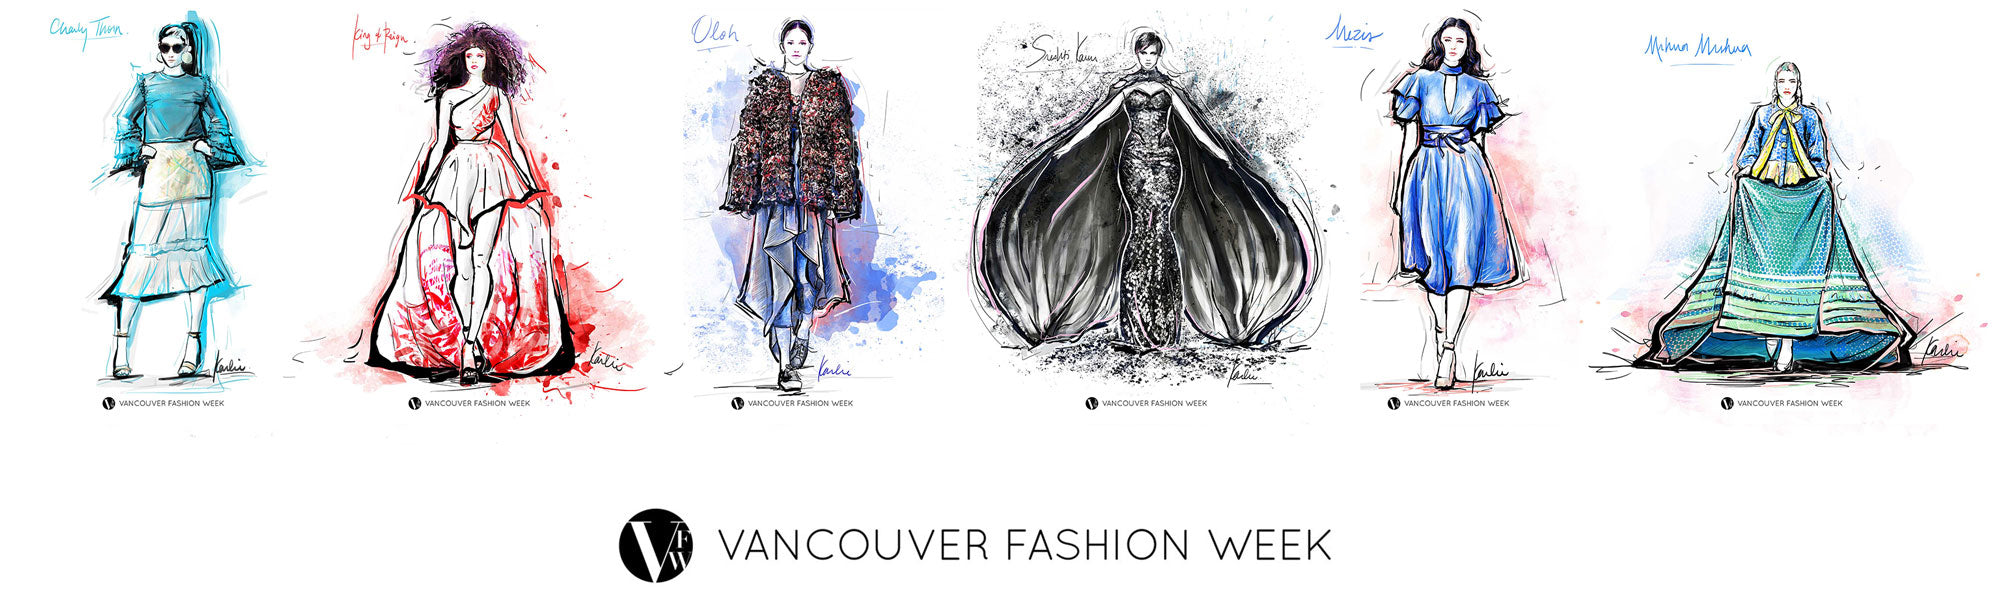 Vancouver Fashion Week ss18 as illustrated by Karlie Carpentier Rosin